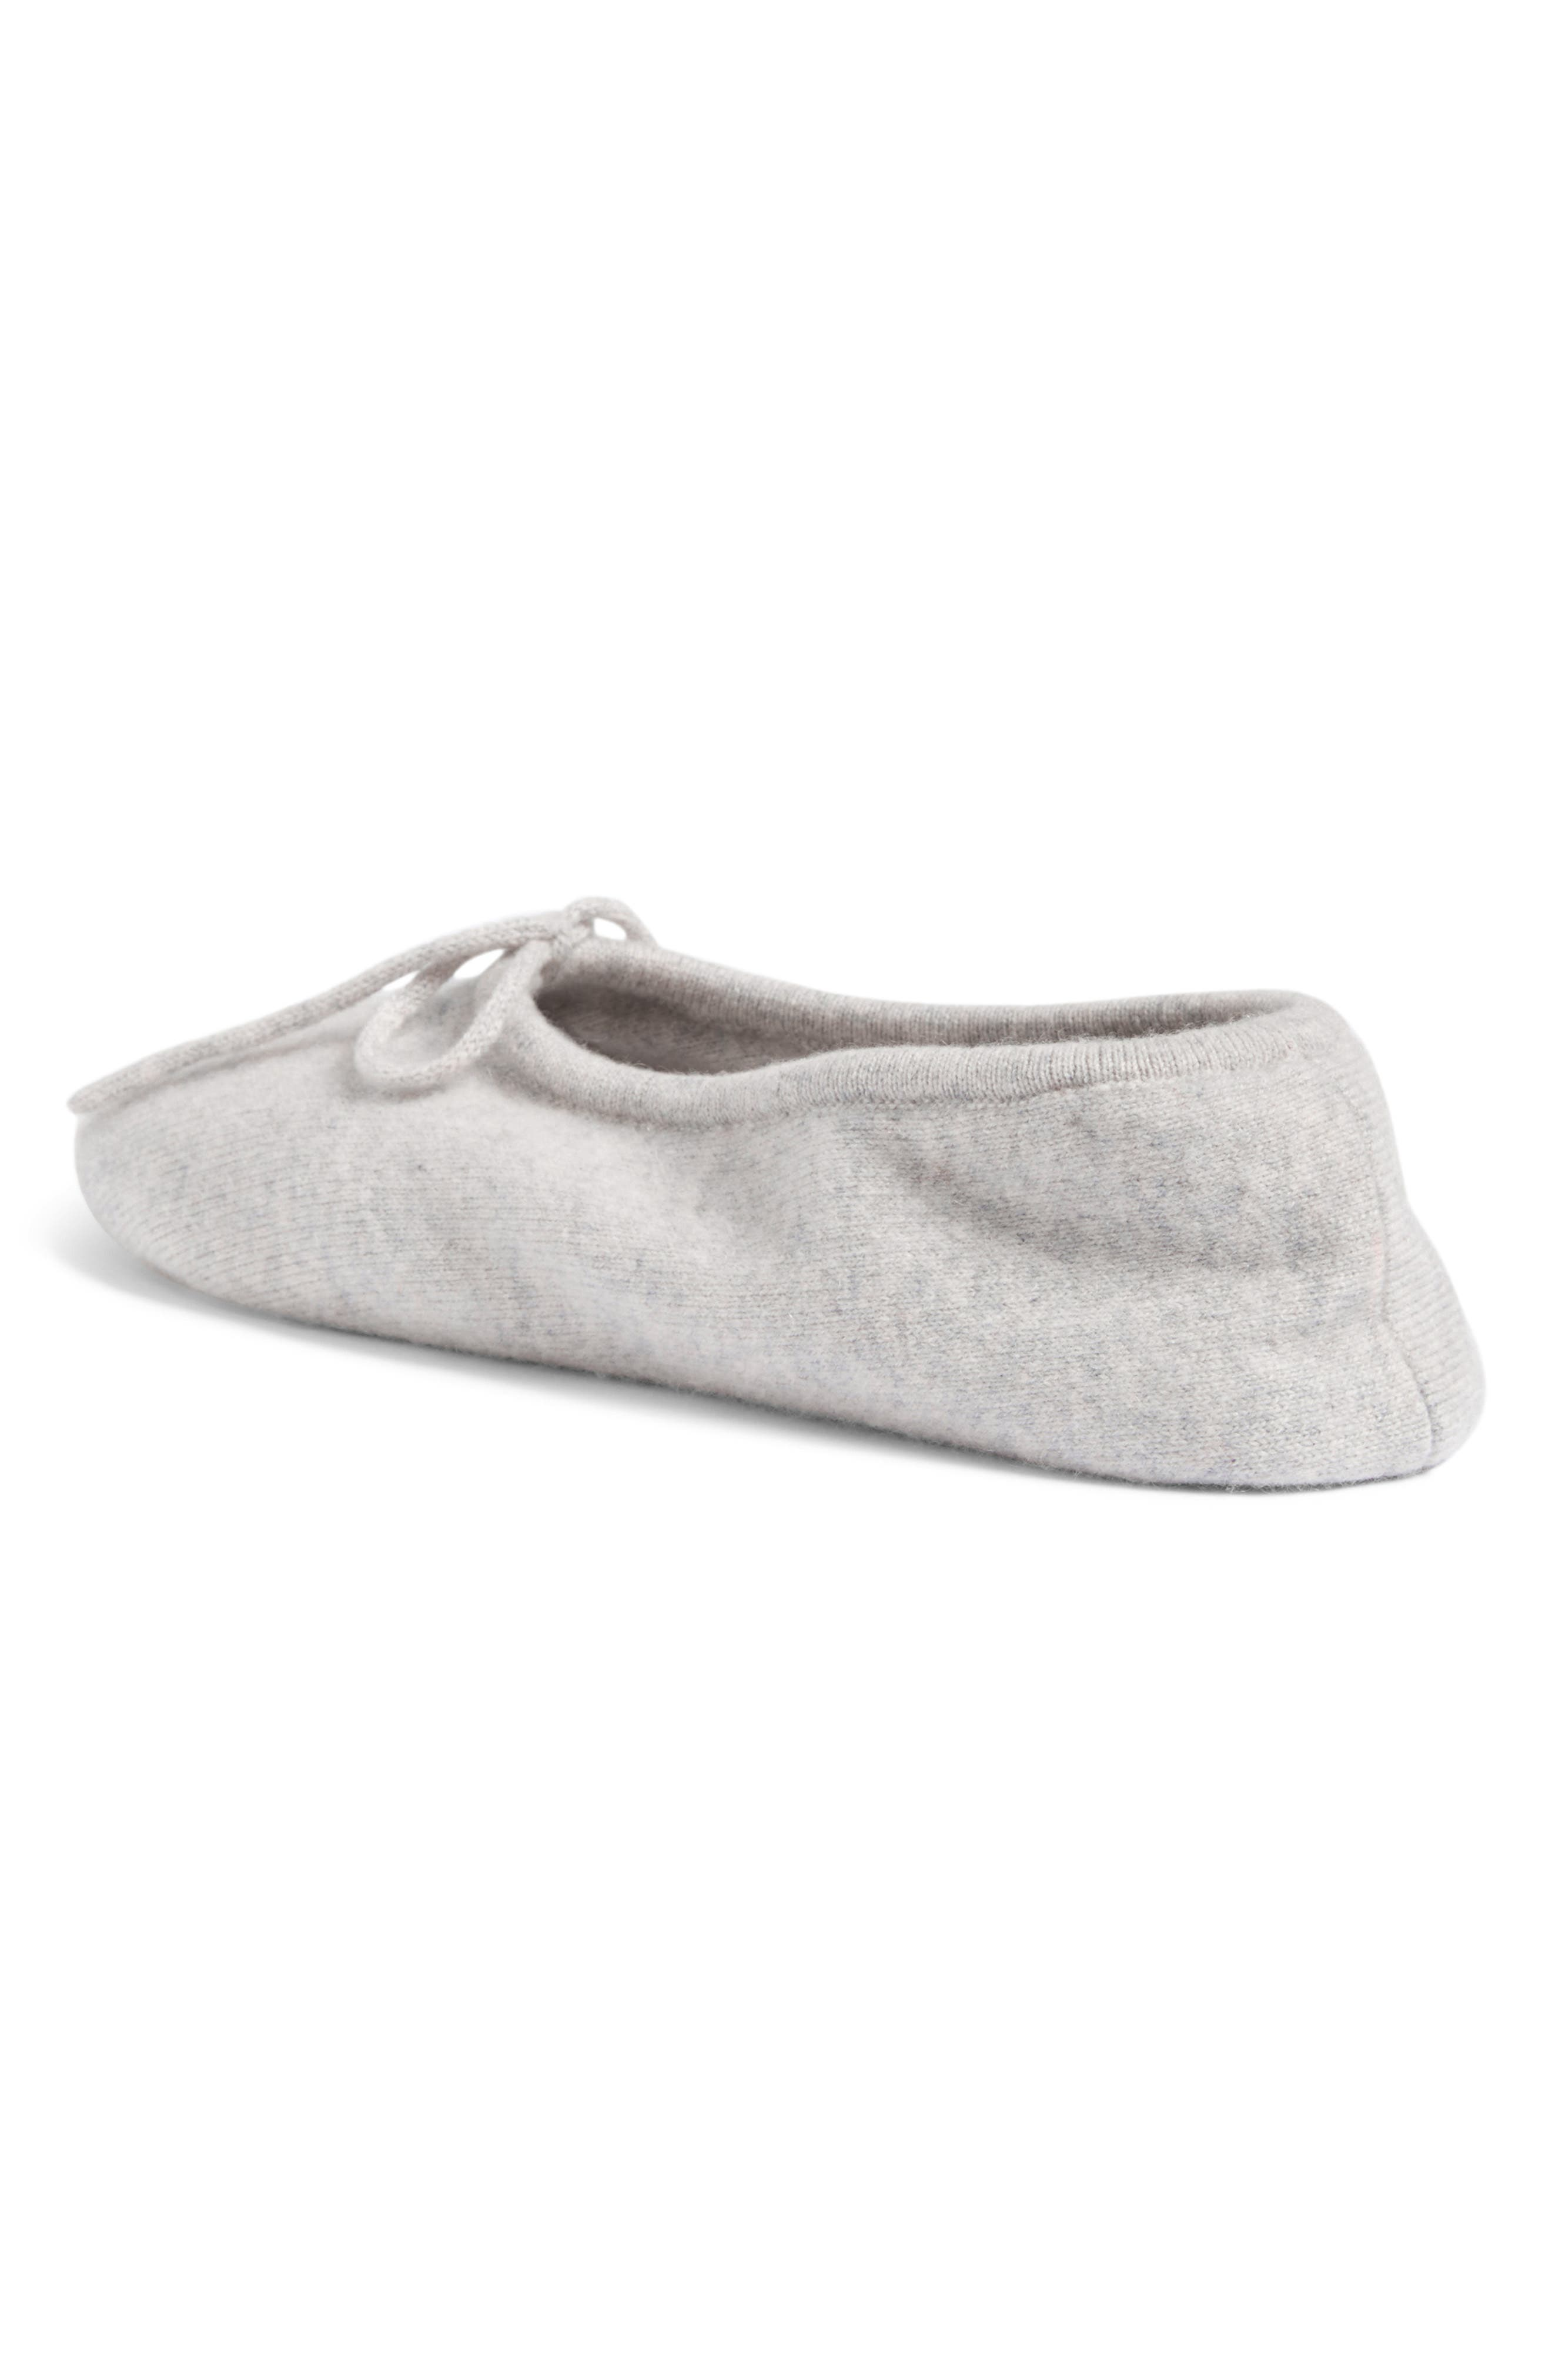 Wool & Cashmere Ballerina Slippers,                             Alternate thumbnail 2, color,                             Grey Soft Heather